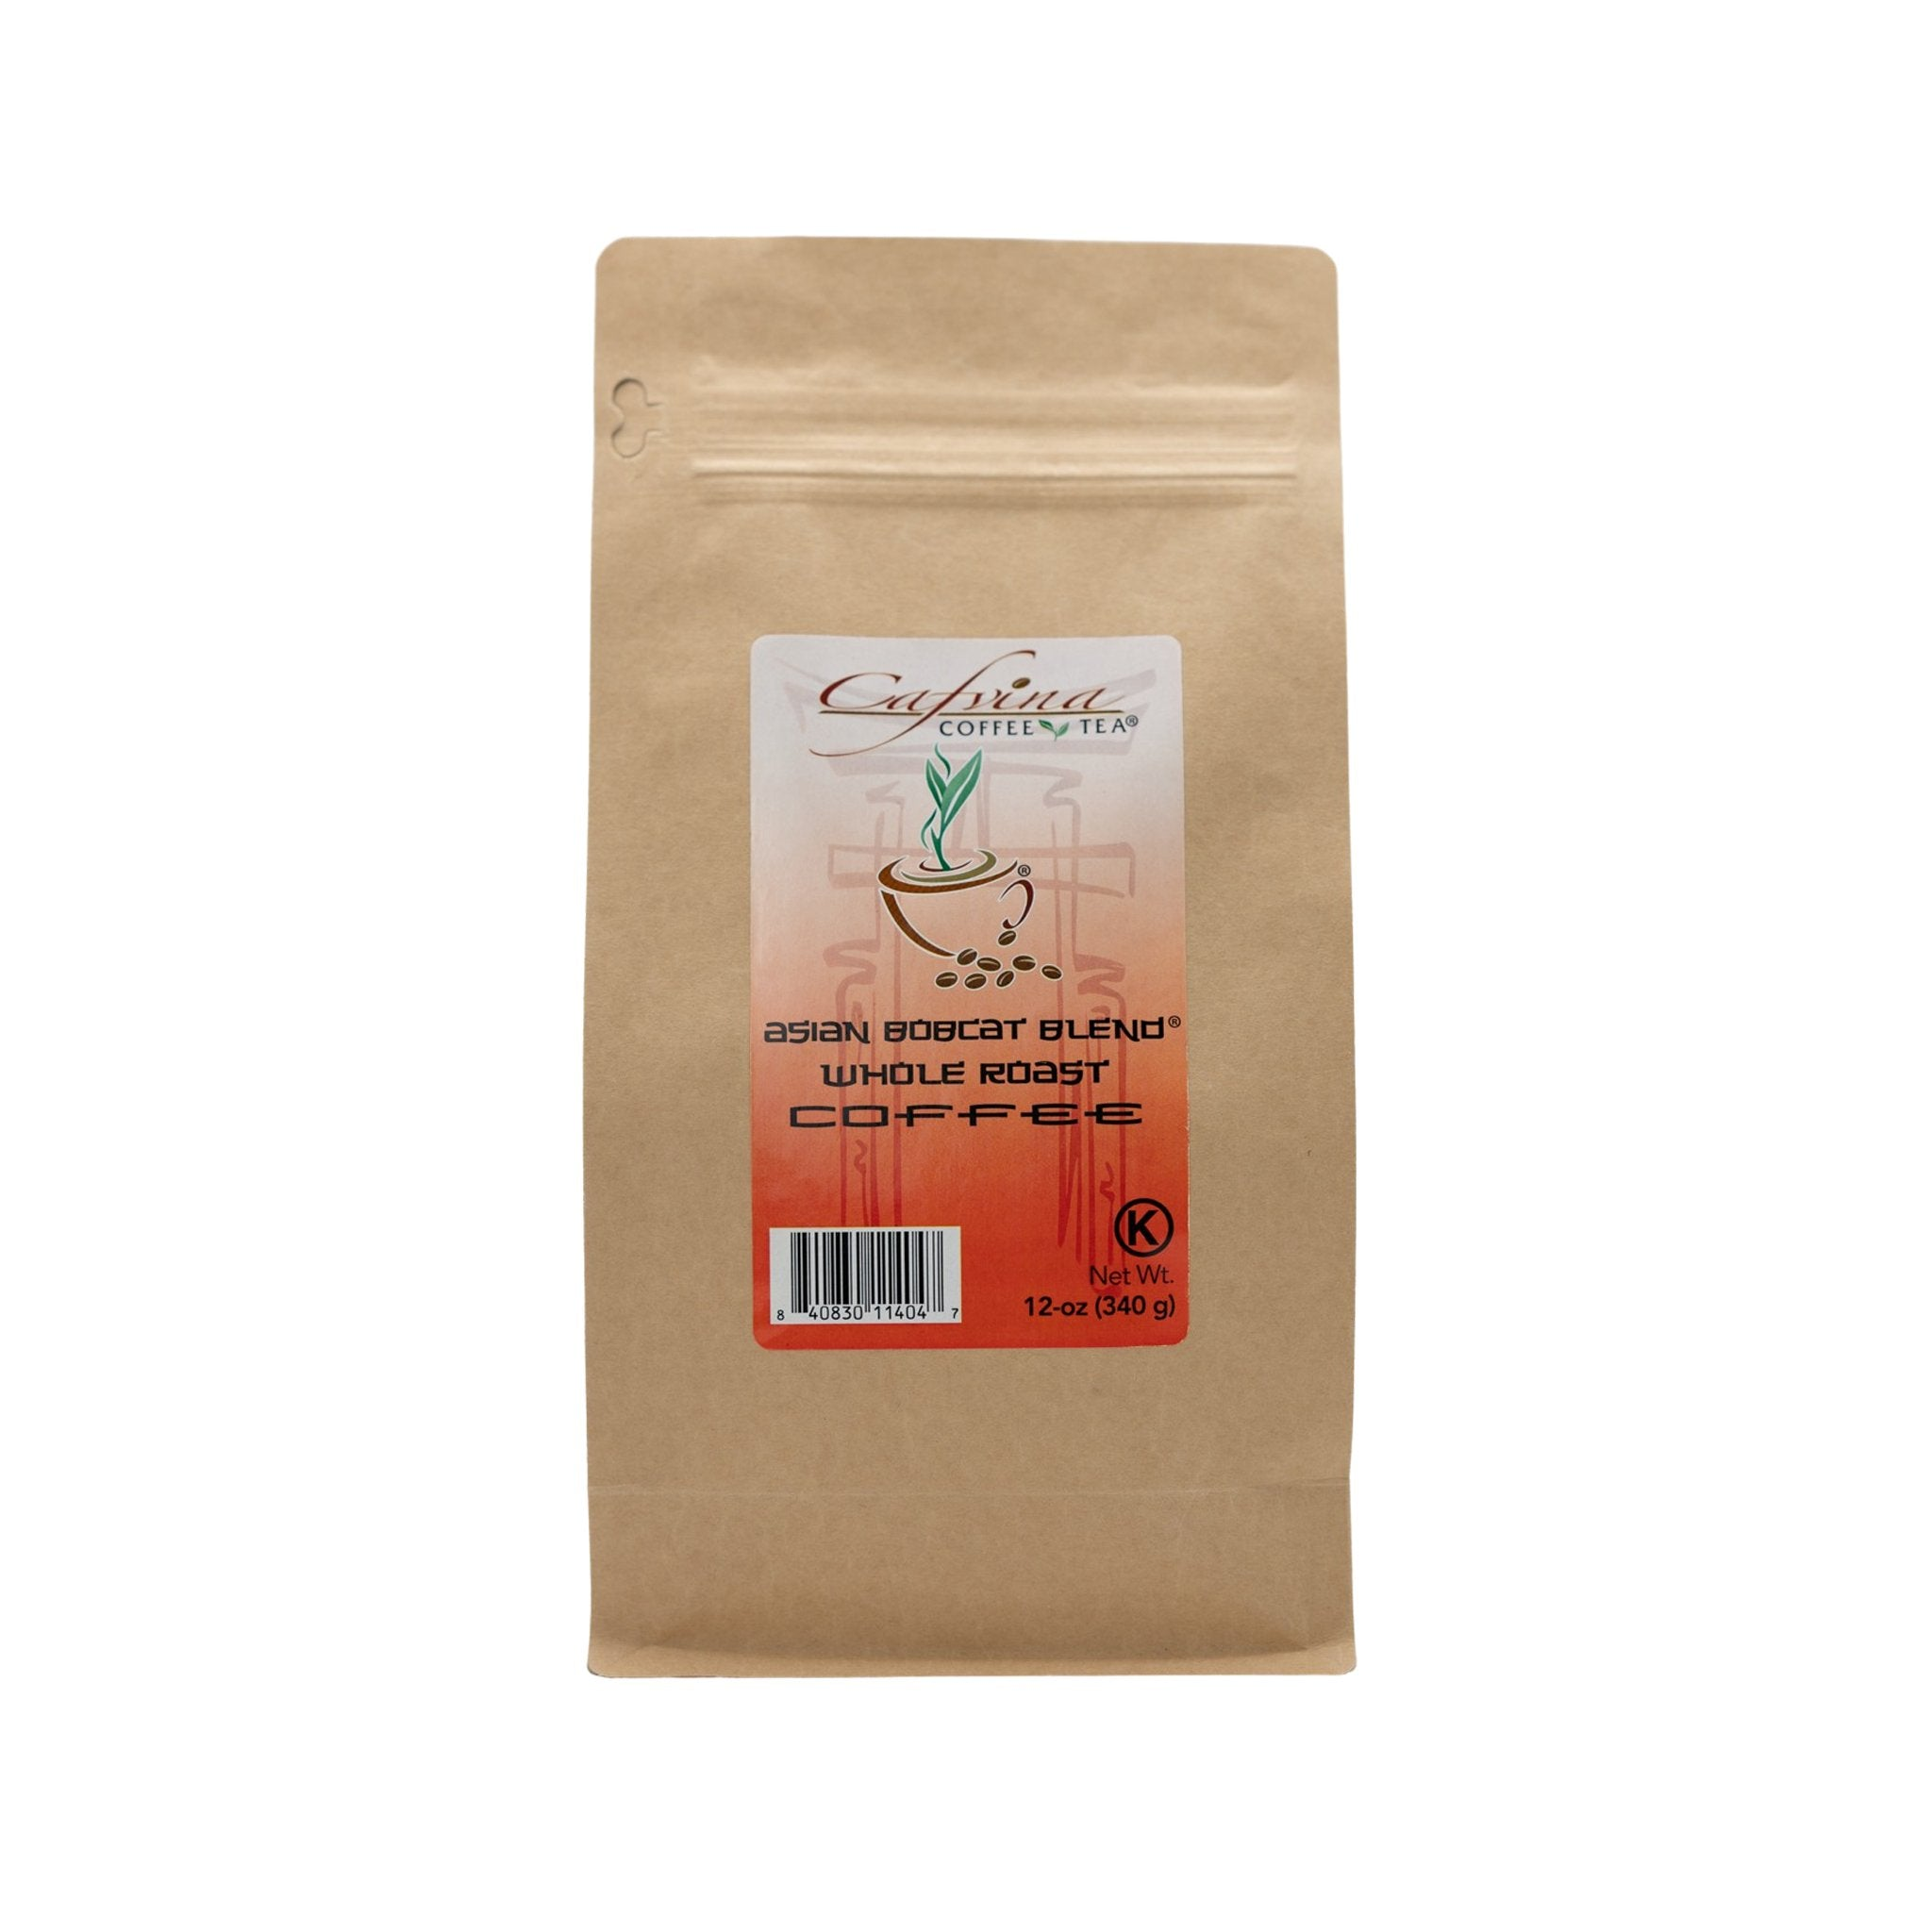 Asian Bobcat Blend® Brand Whole Coffee